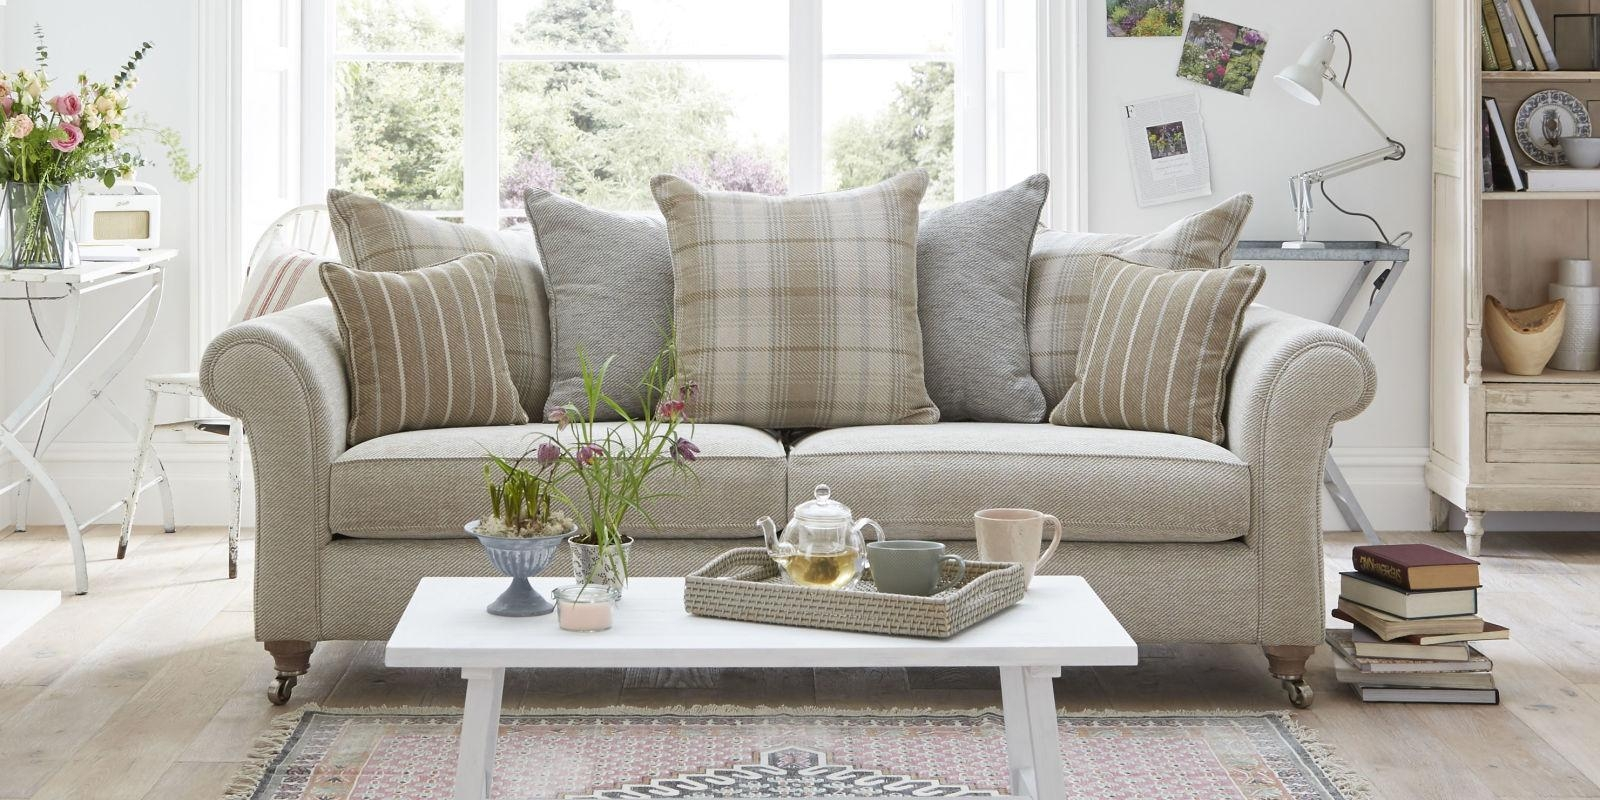 chic sofas uk dfs cloth 20 collection of country style sofa ideas